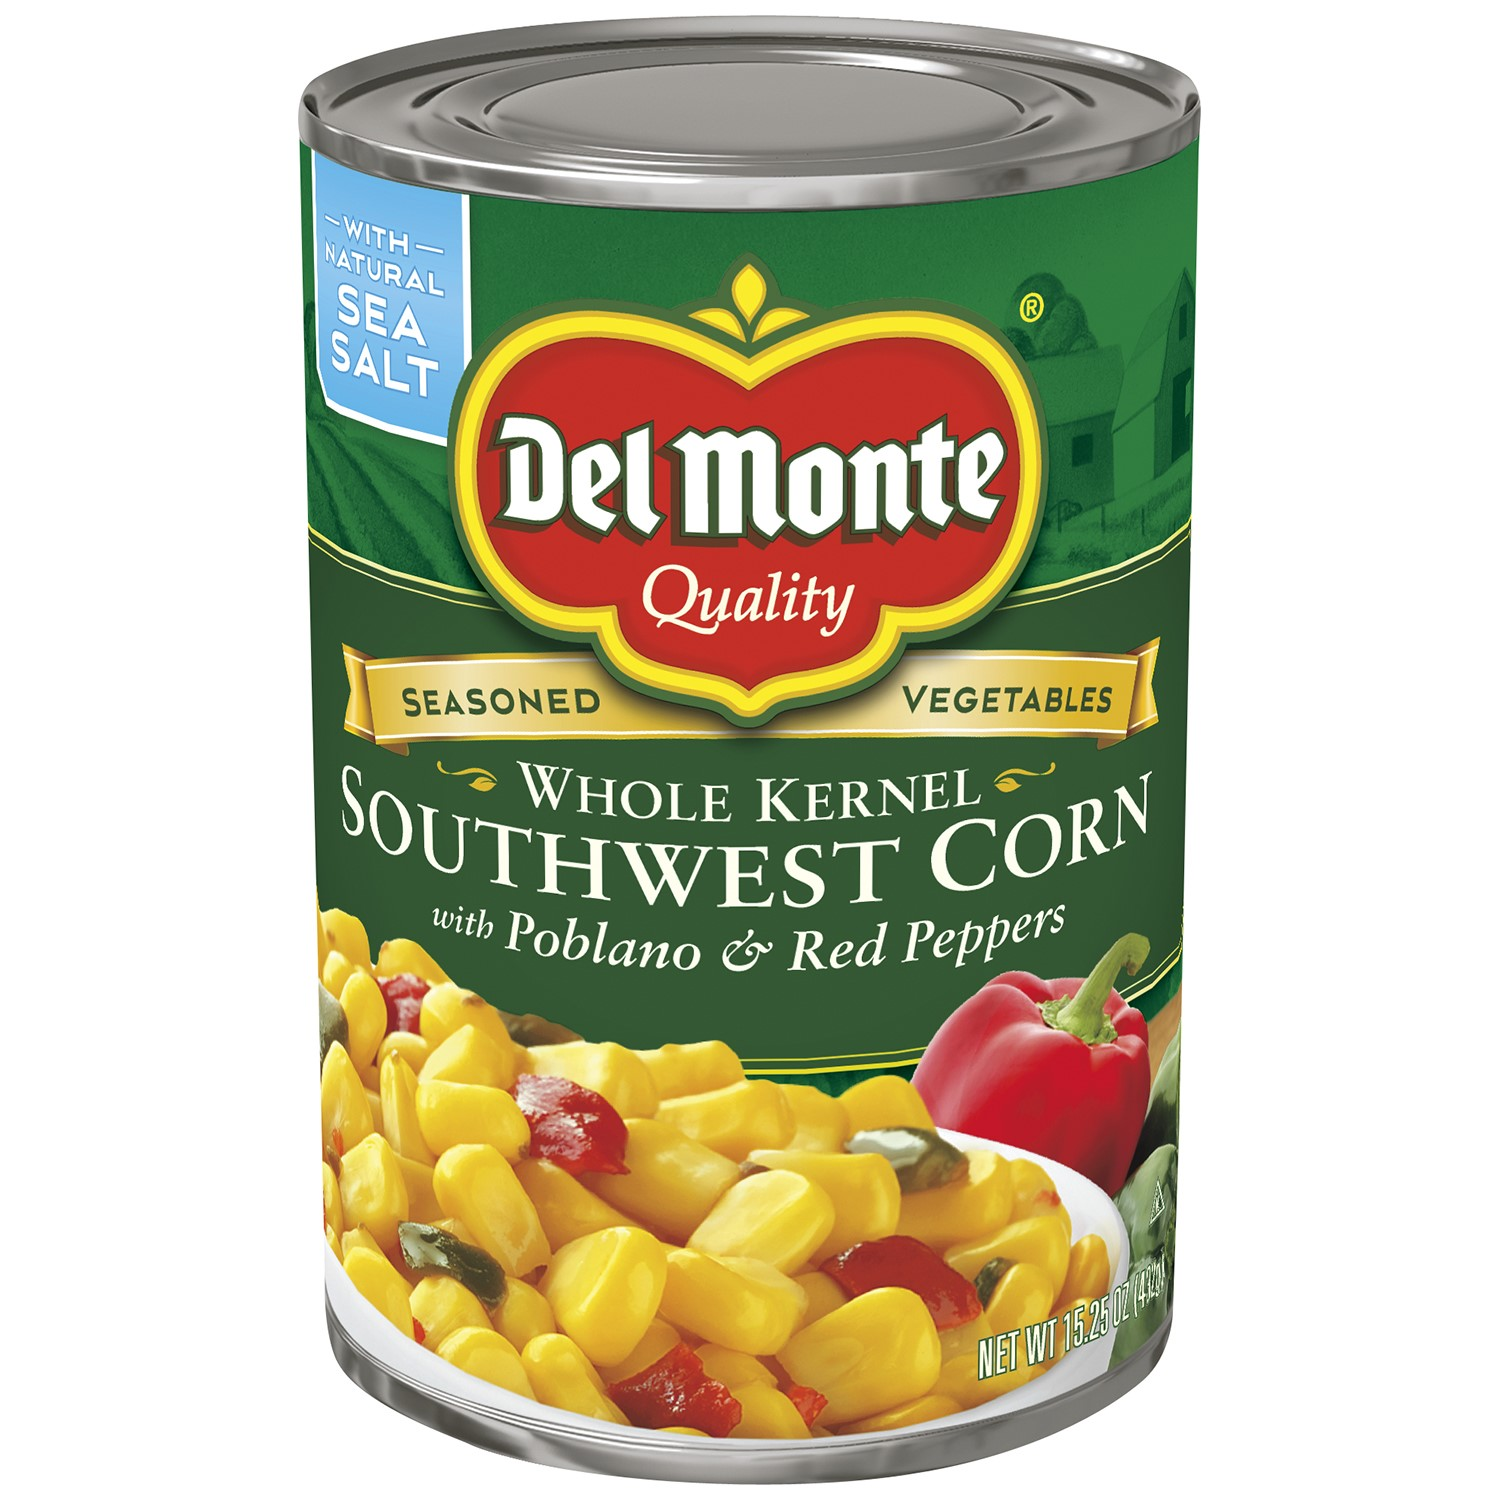 Del Monte Whole Kernel Corn Southwest With Pablano & Red Peppers, 15.25 Oz